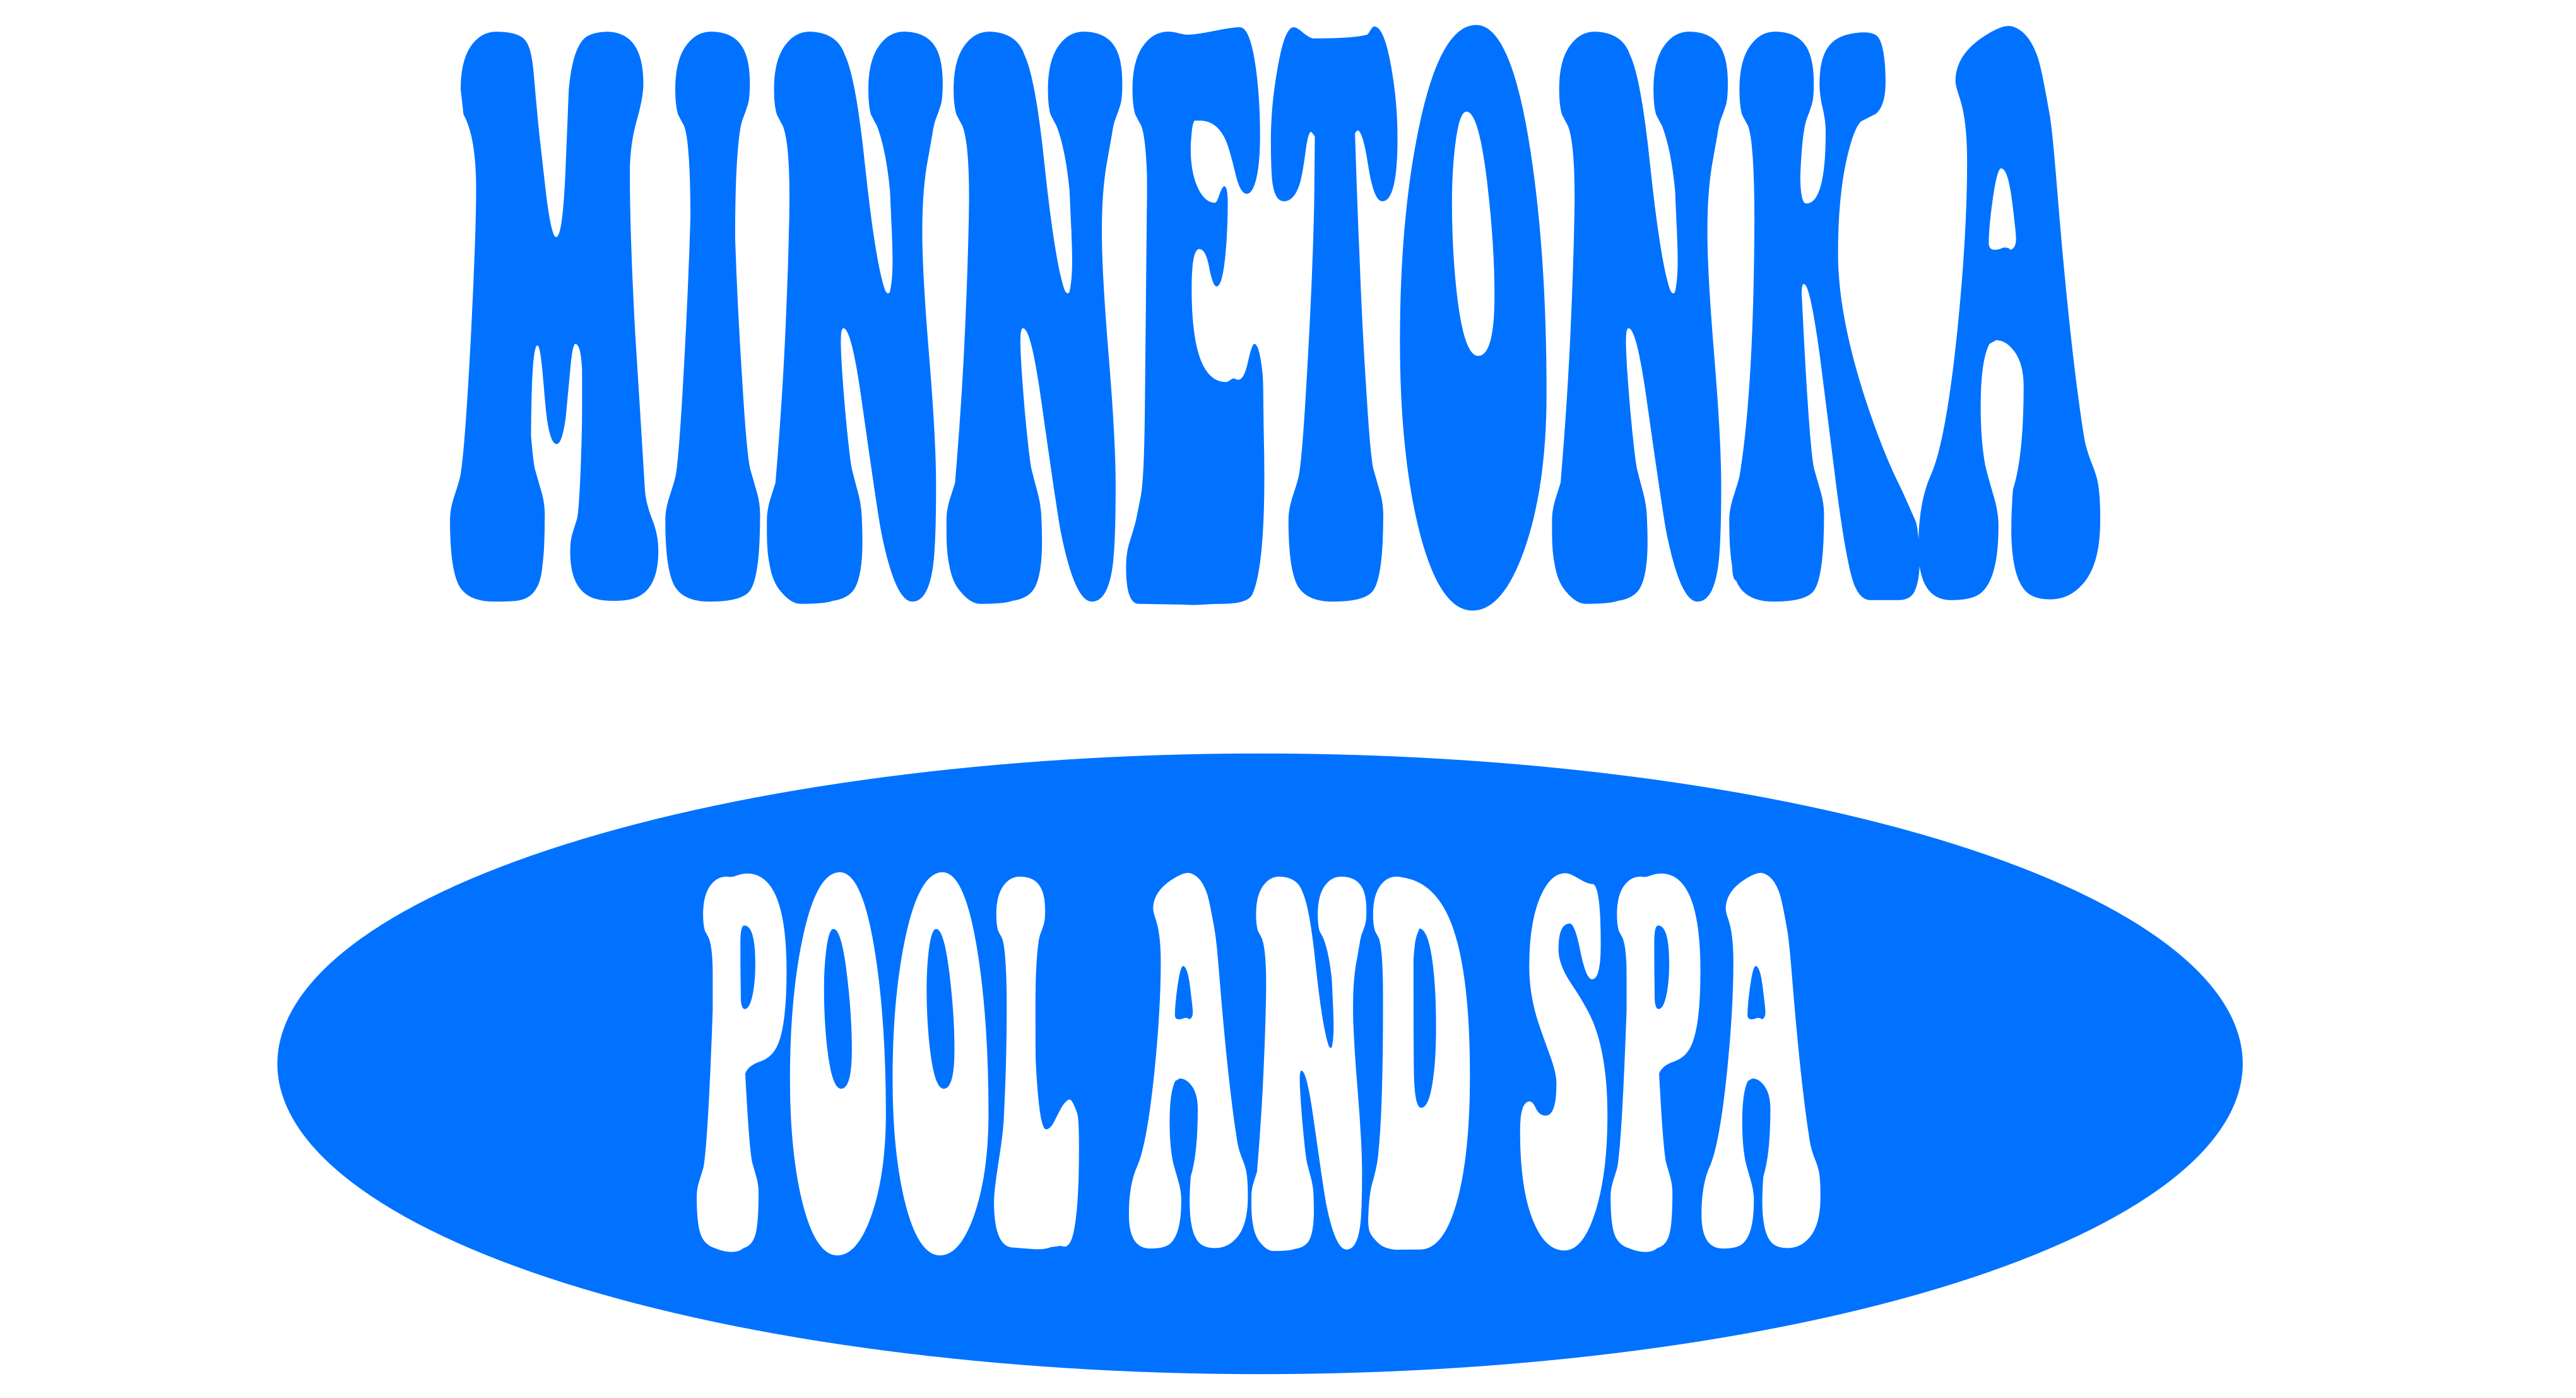 Minnetonka Pool and Spa